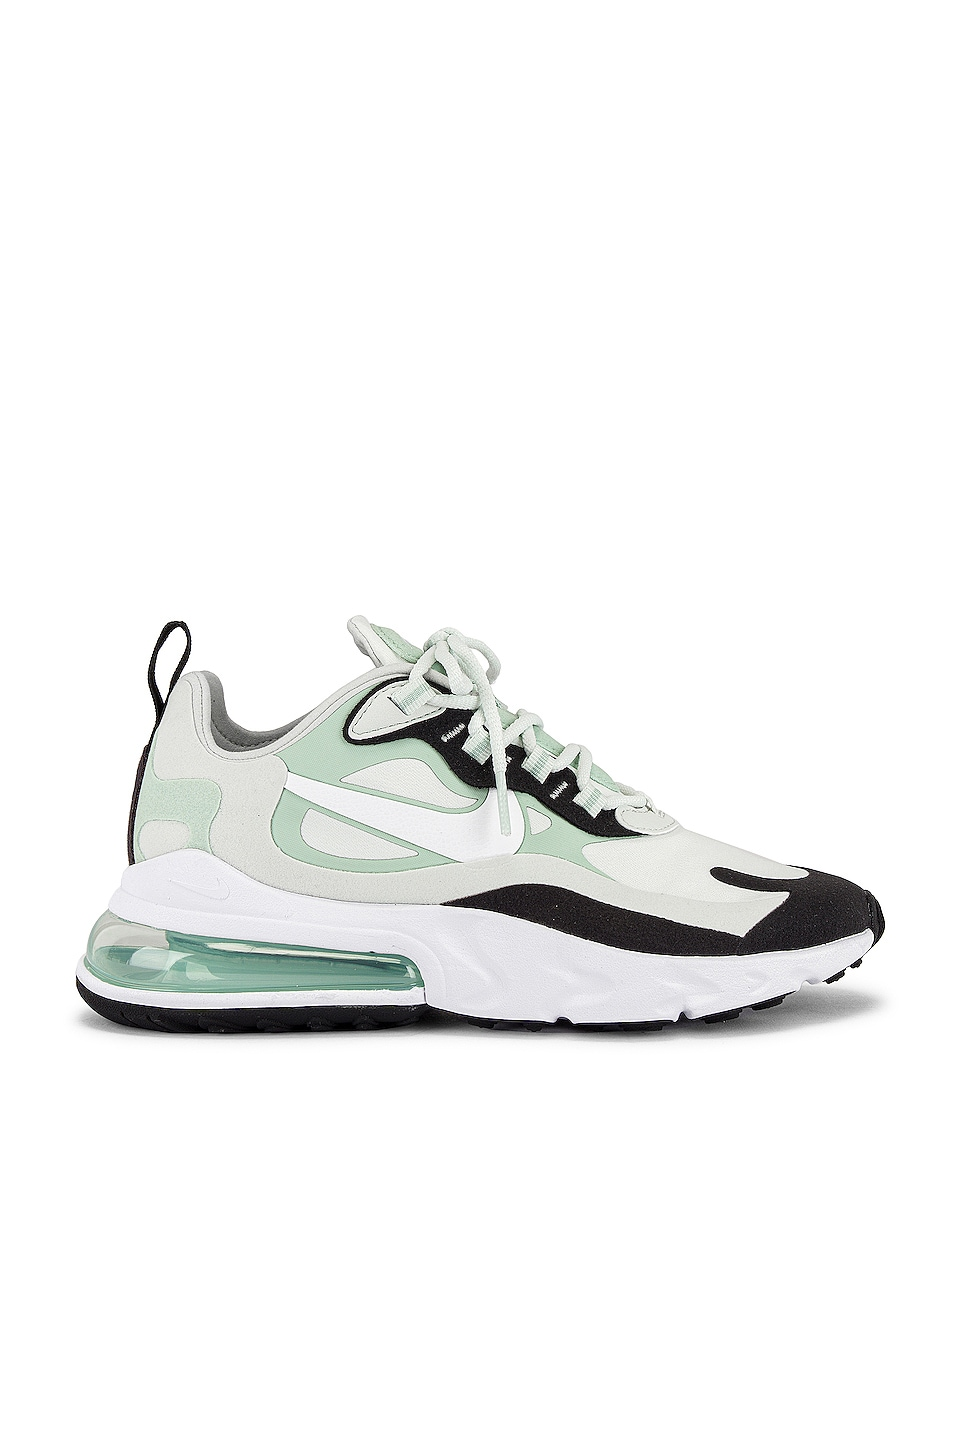 Nike Air Max 270 React Sneaker in Spruce Aura, White & Pistachio Frost